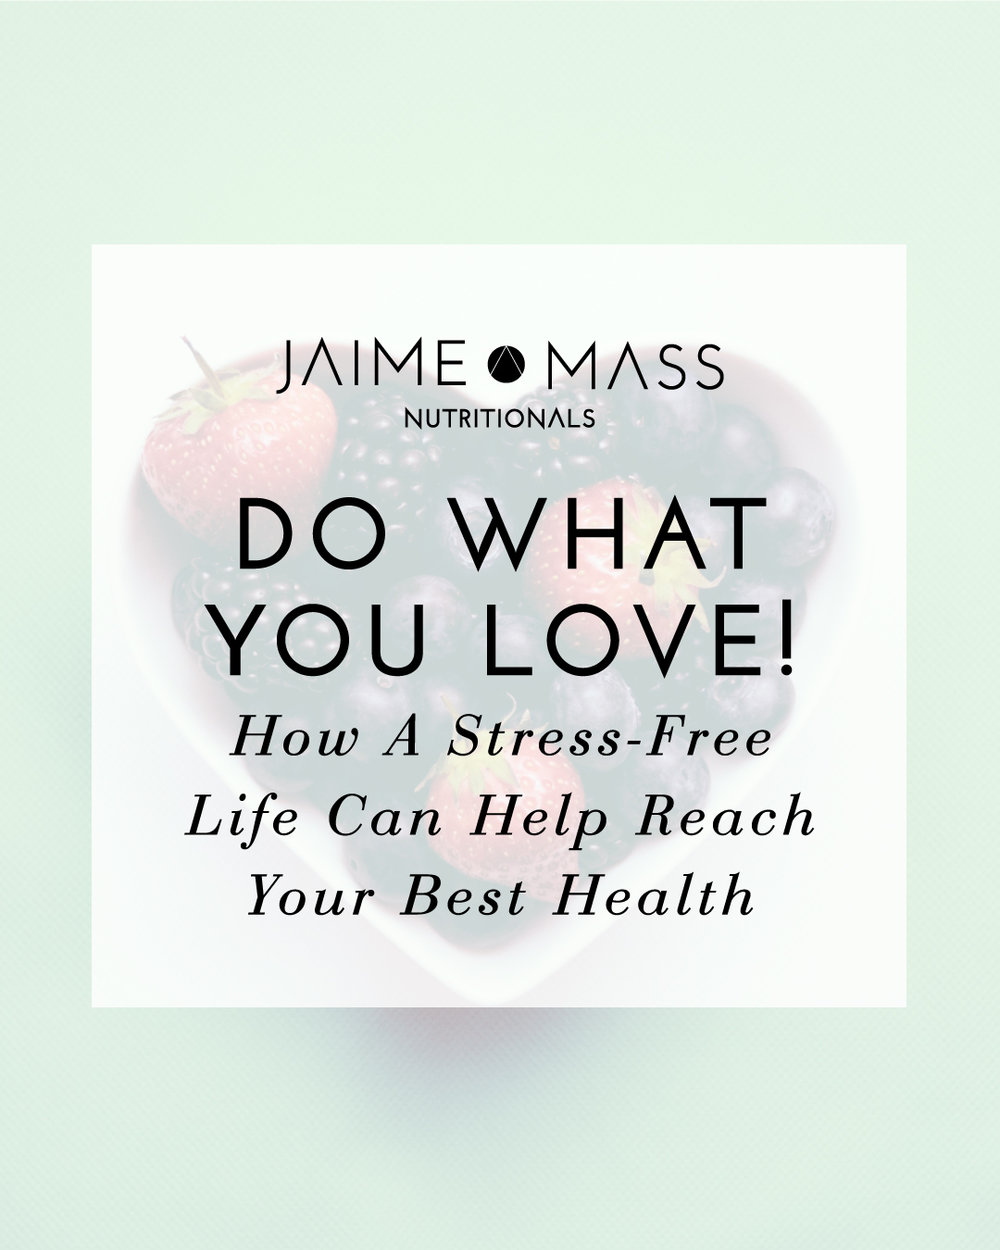 Do What You Love! How A Stress-Free Life Can Help Reach Your Best Health